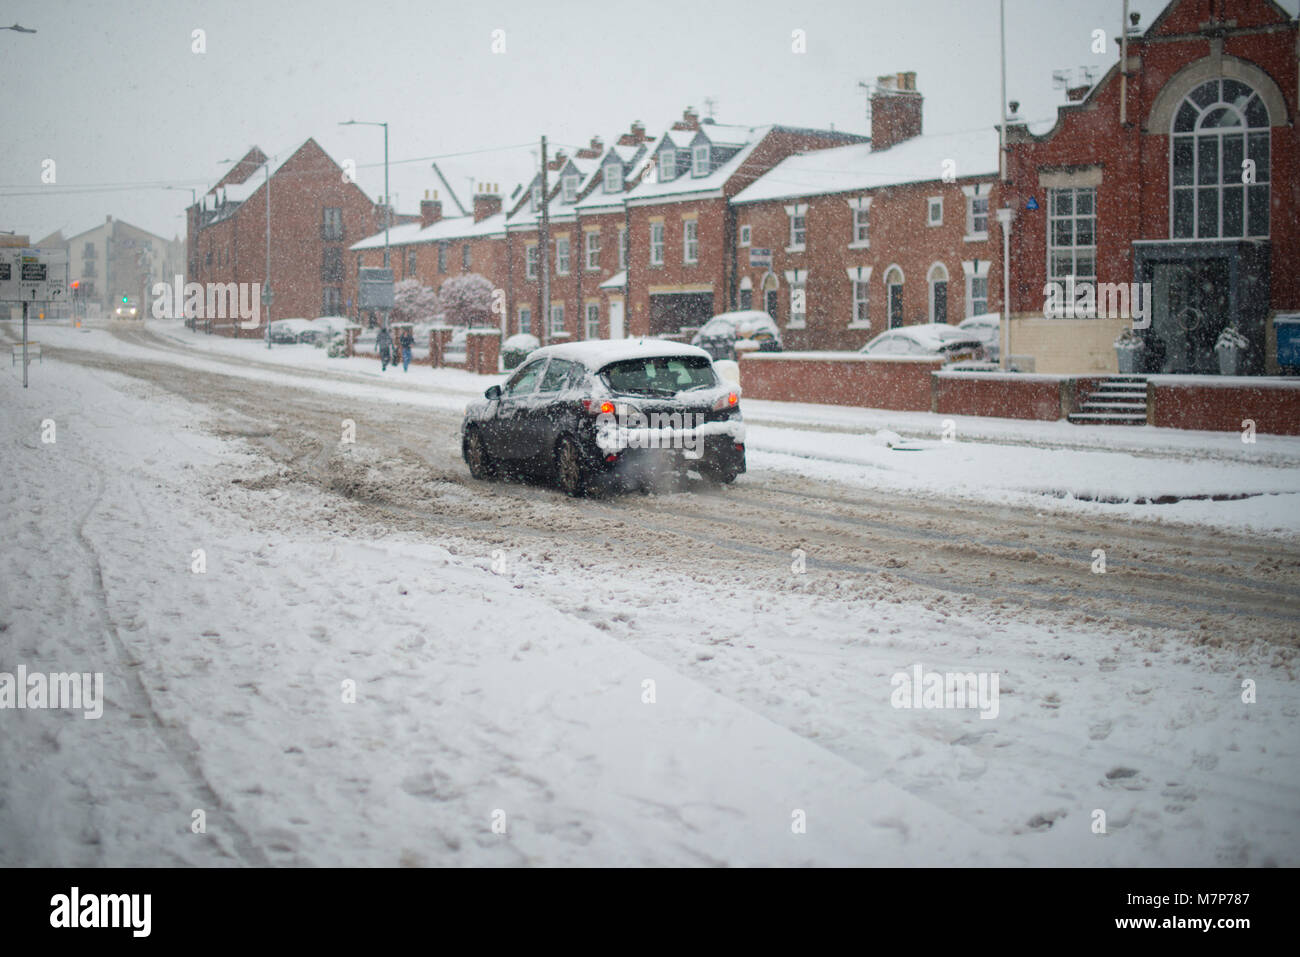 traffic chaos in snow and blizzard conditions as cars skid in street with row of houses in background UK - Stock Image